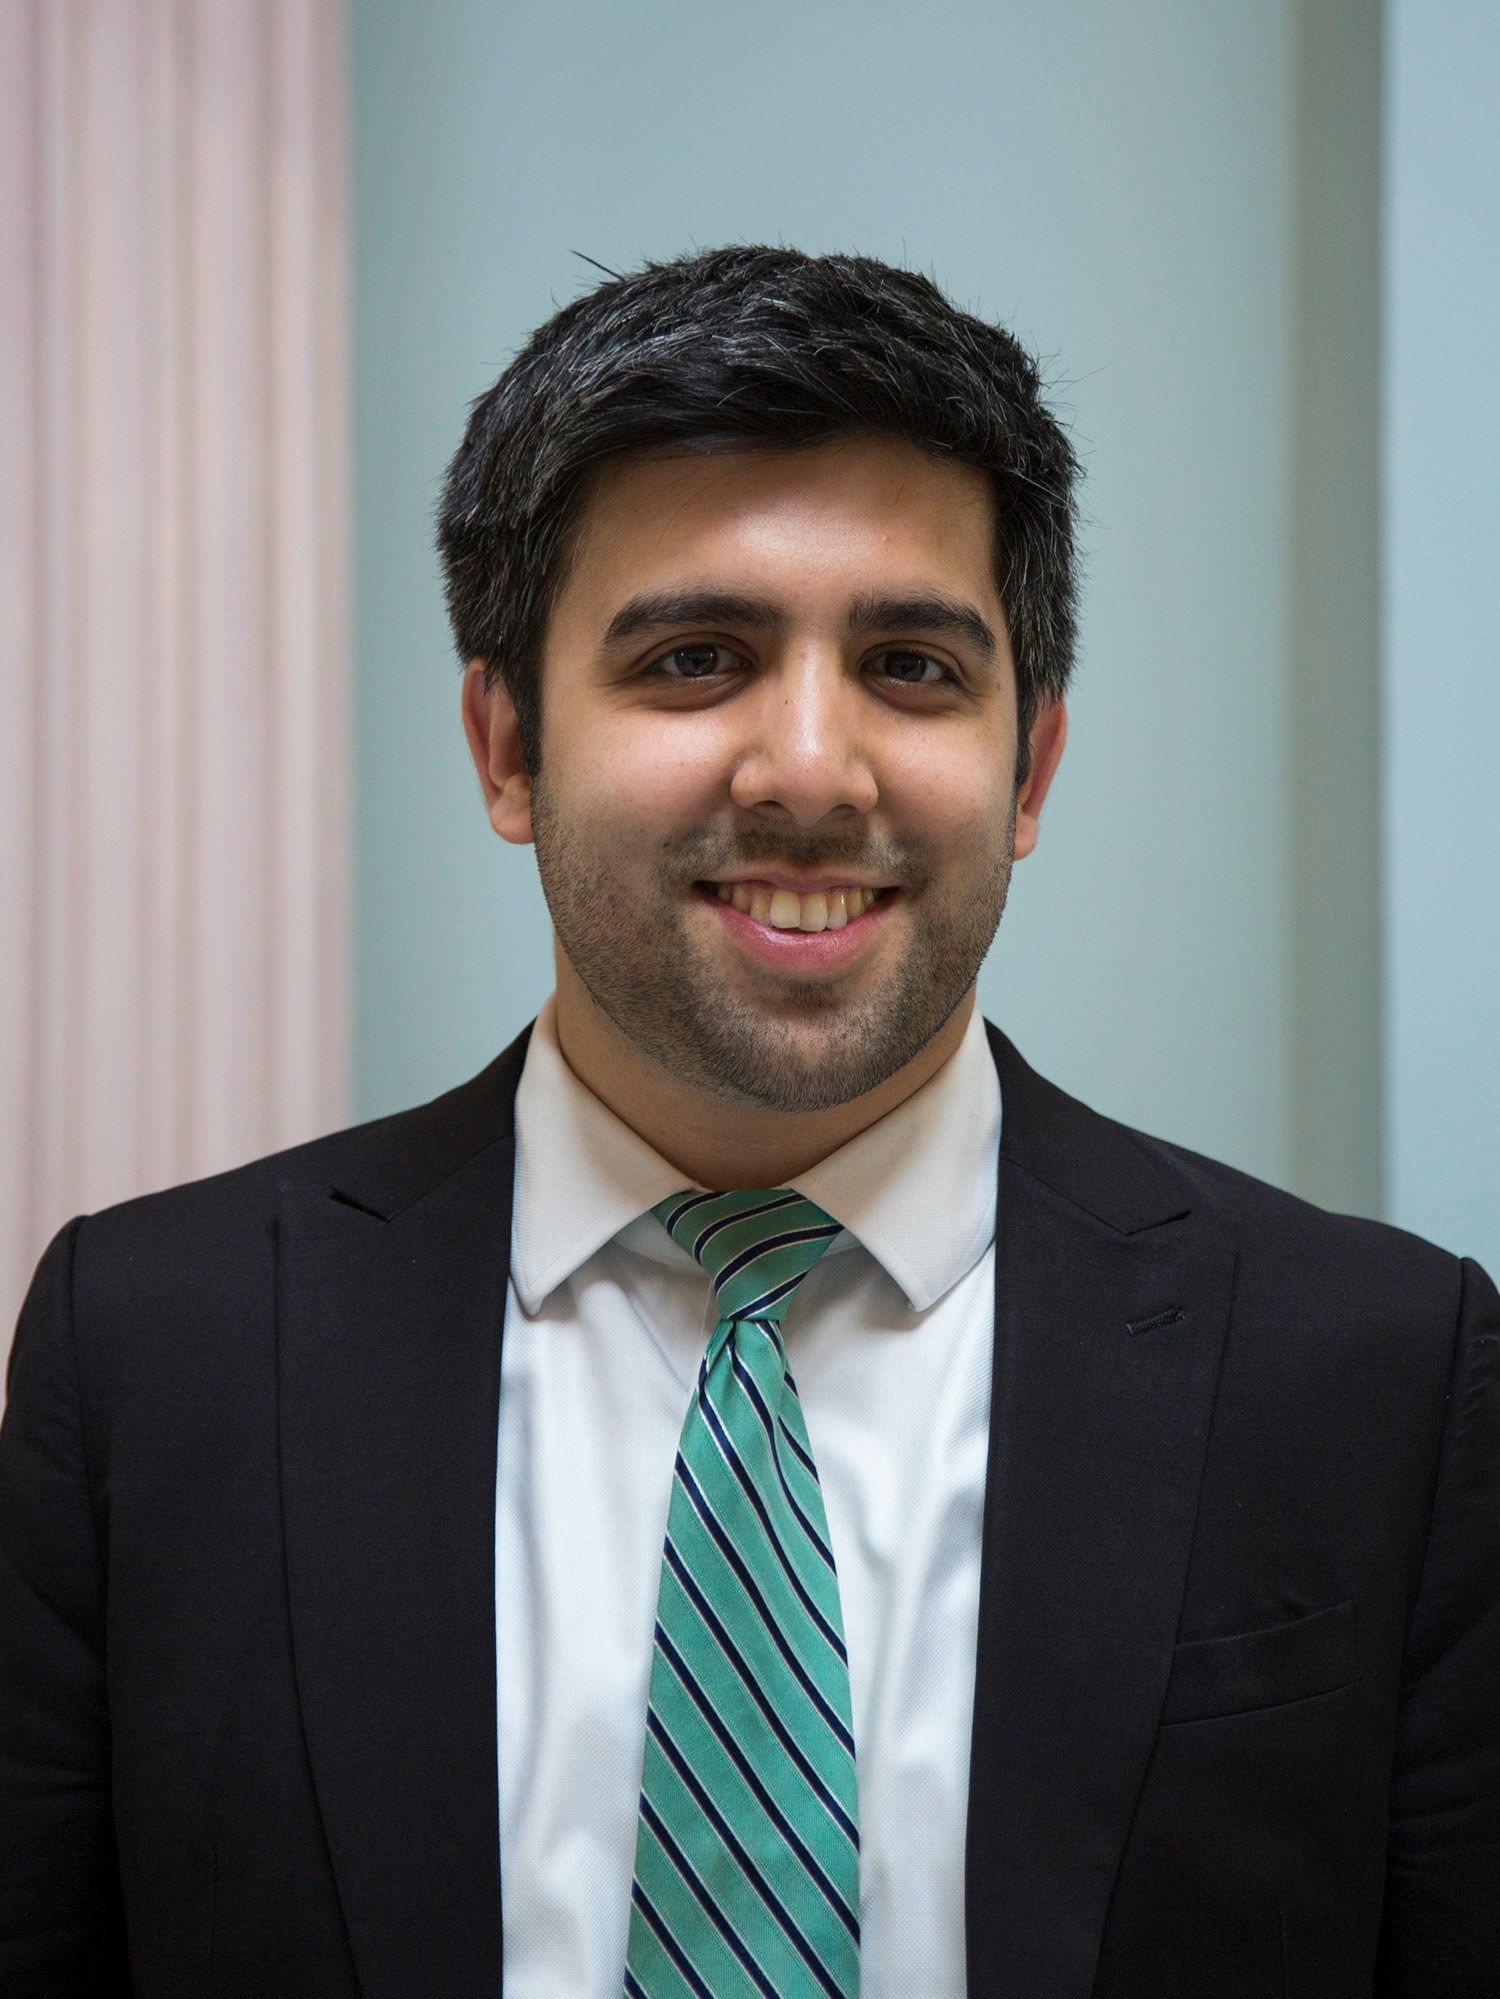 Zaki Barzinji, 27, recently began as liaison to the Muslim American community under the White House Office of Public Eng